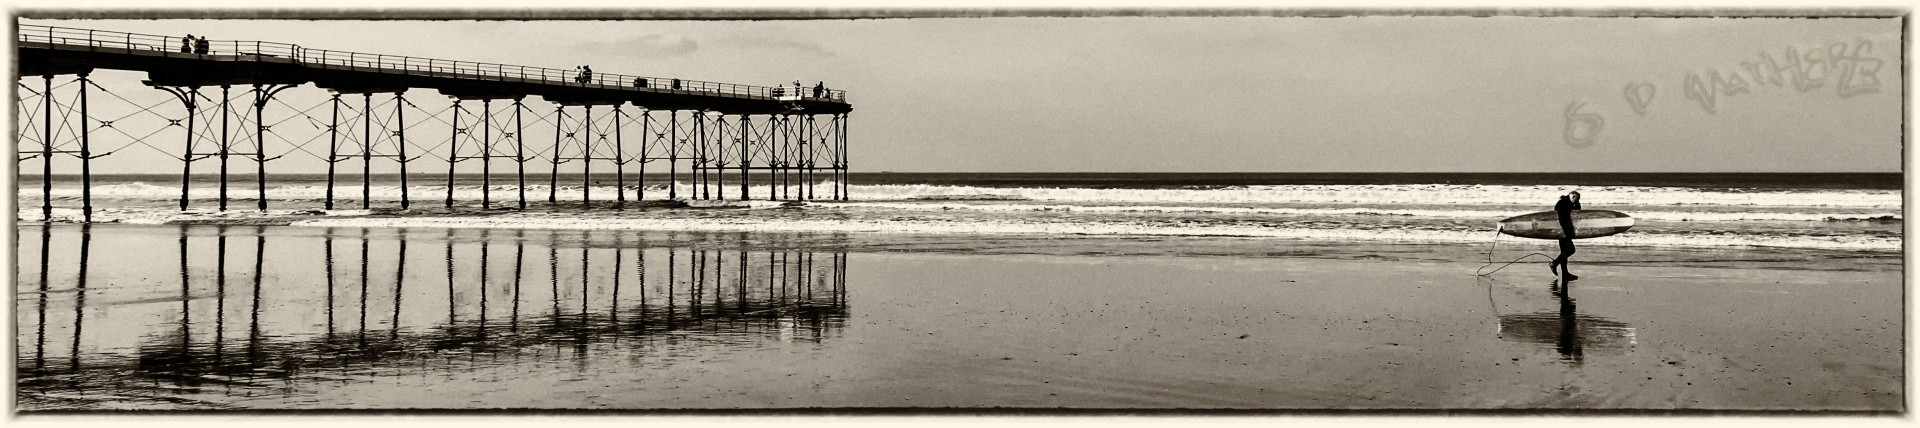 chuxsta's photo of Saltburn Beach